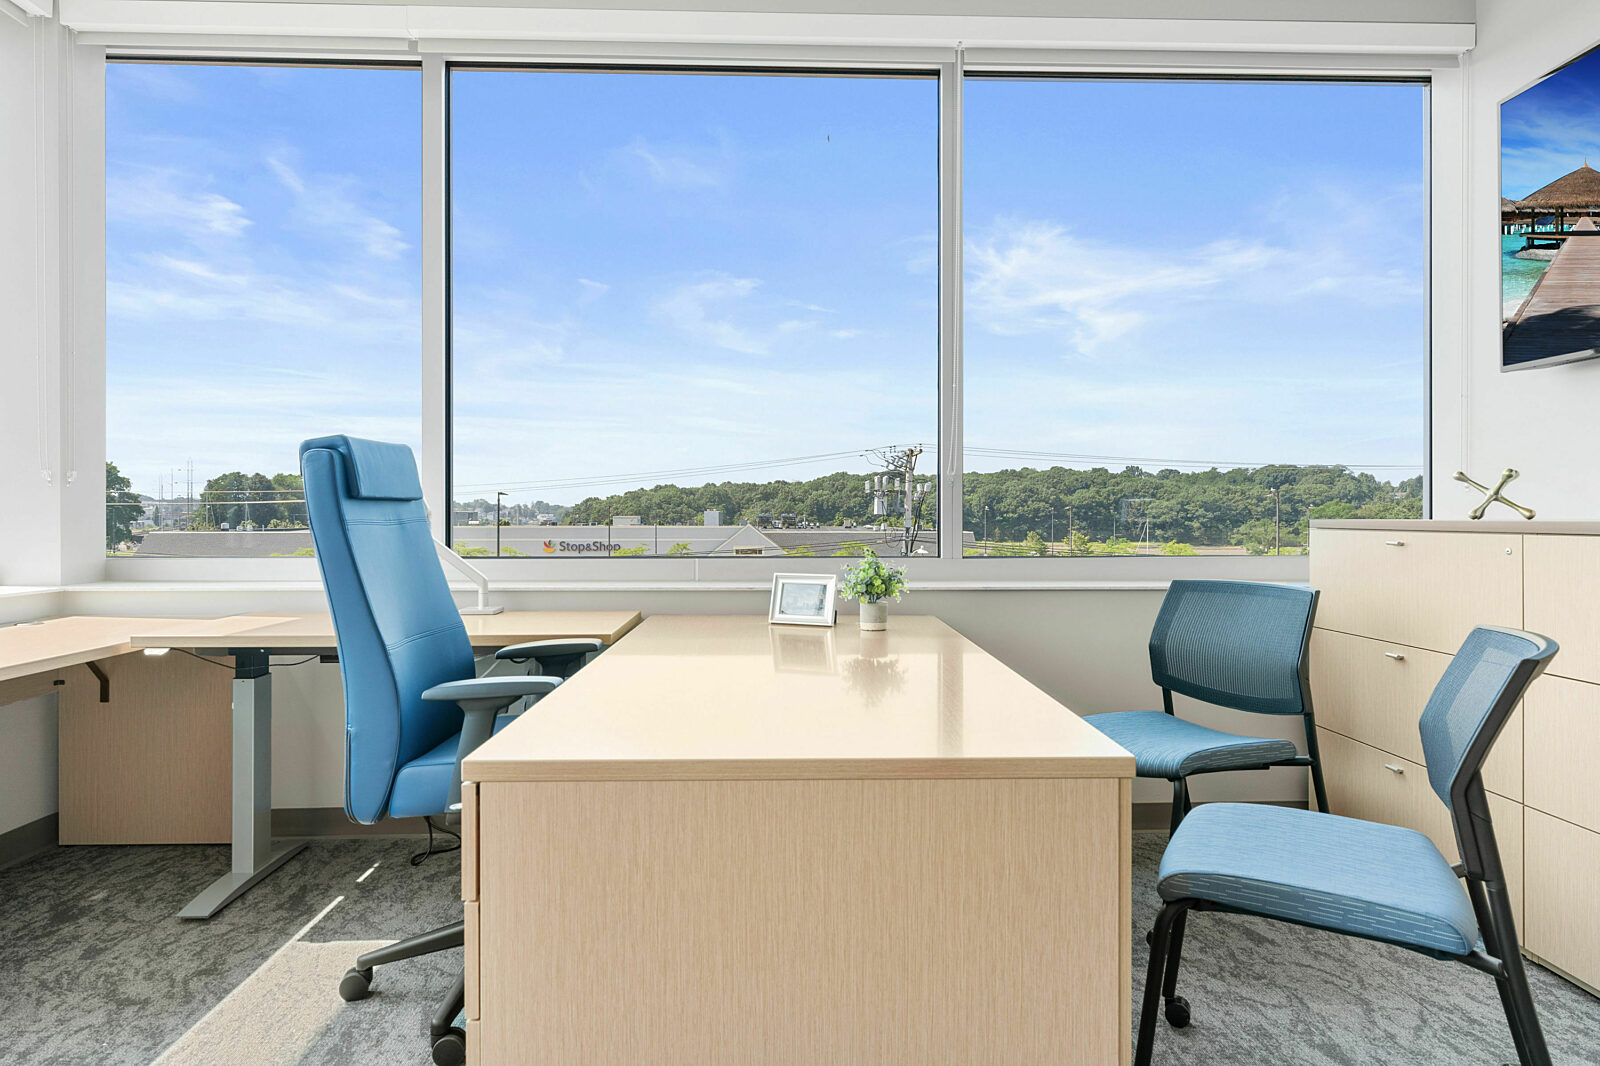 private office, task chair, side chair, height adjustable desk